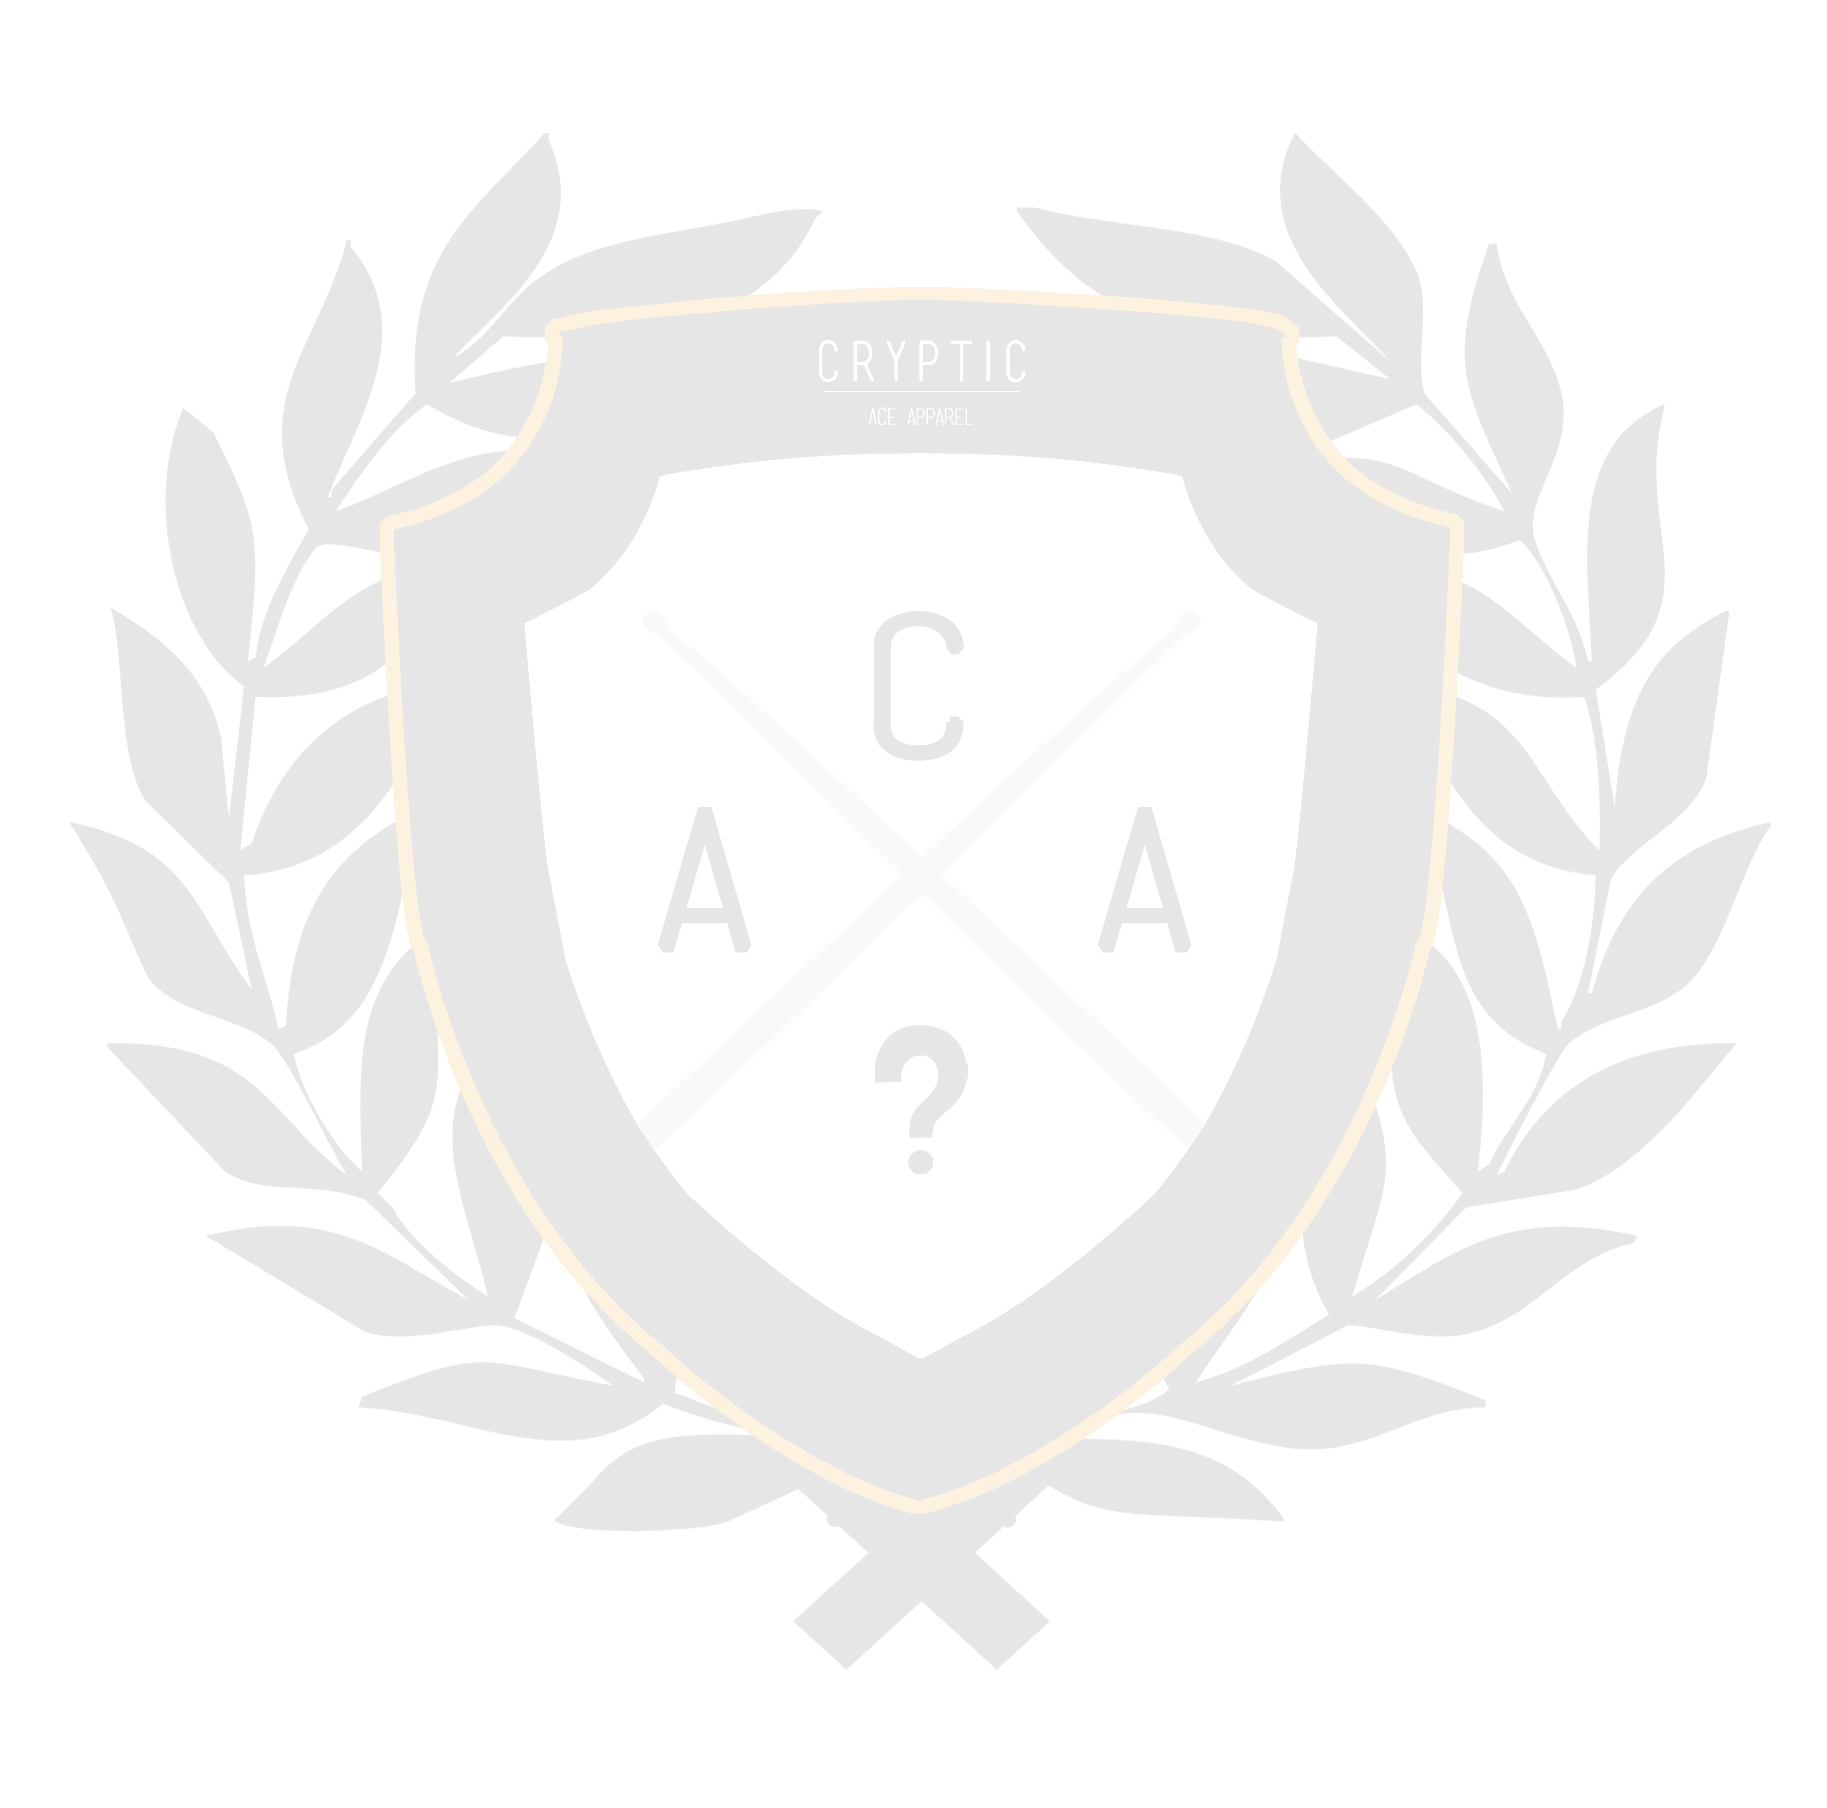 cryptic-crest-logo.png